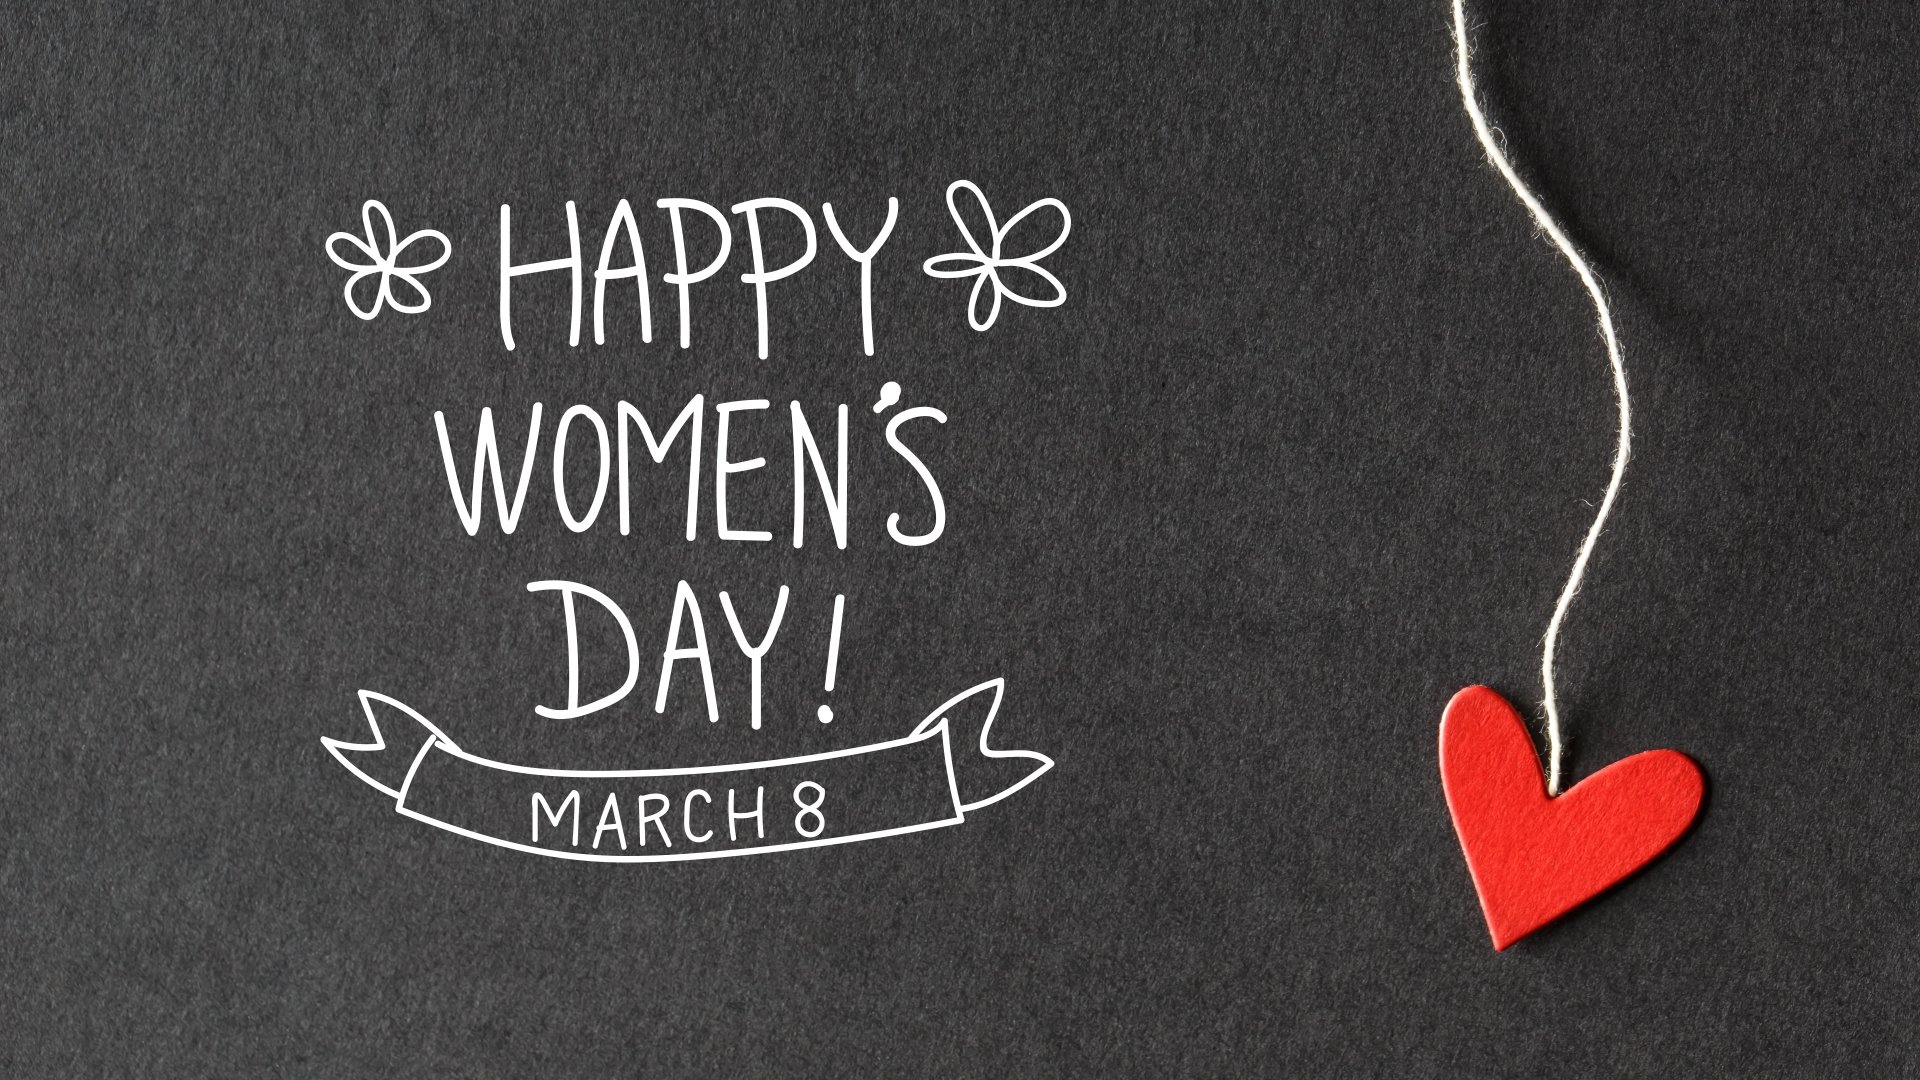 March 8 Women's Day Wallpaper HD 1920x1080